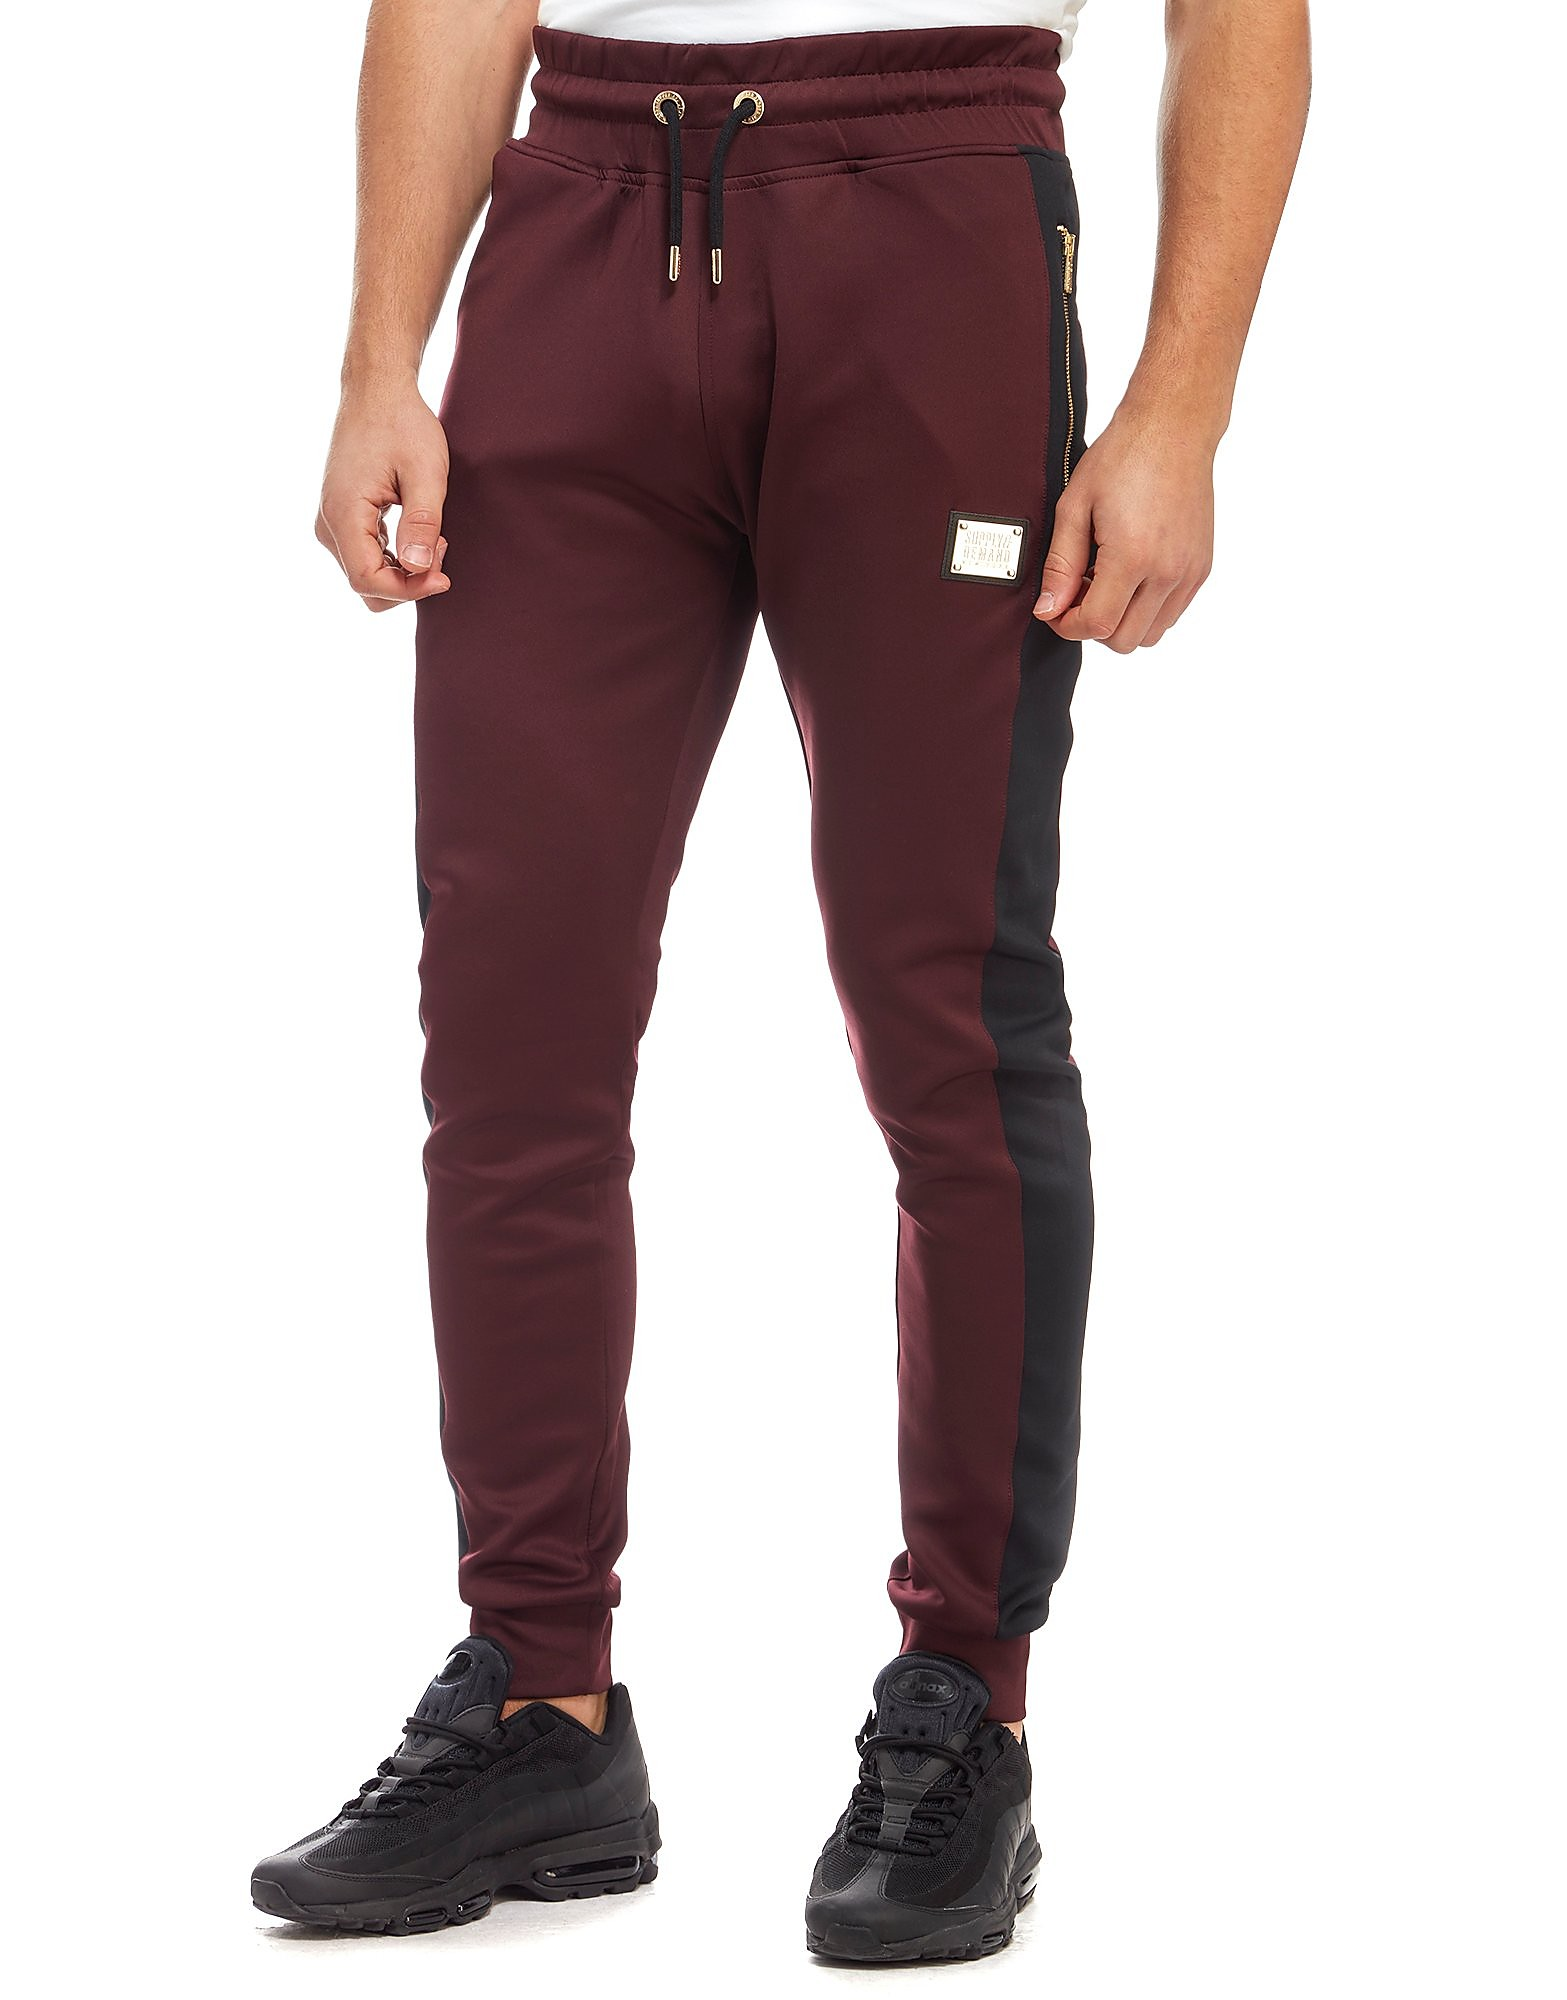 Supply & Demand Sky Joggers - Only at JD - rouge, rouge